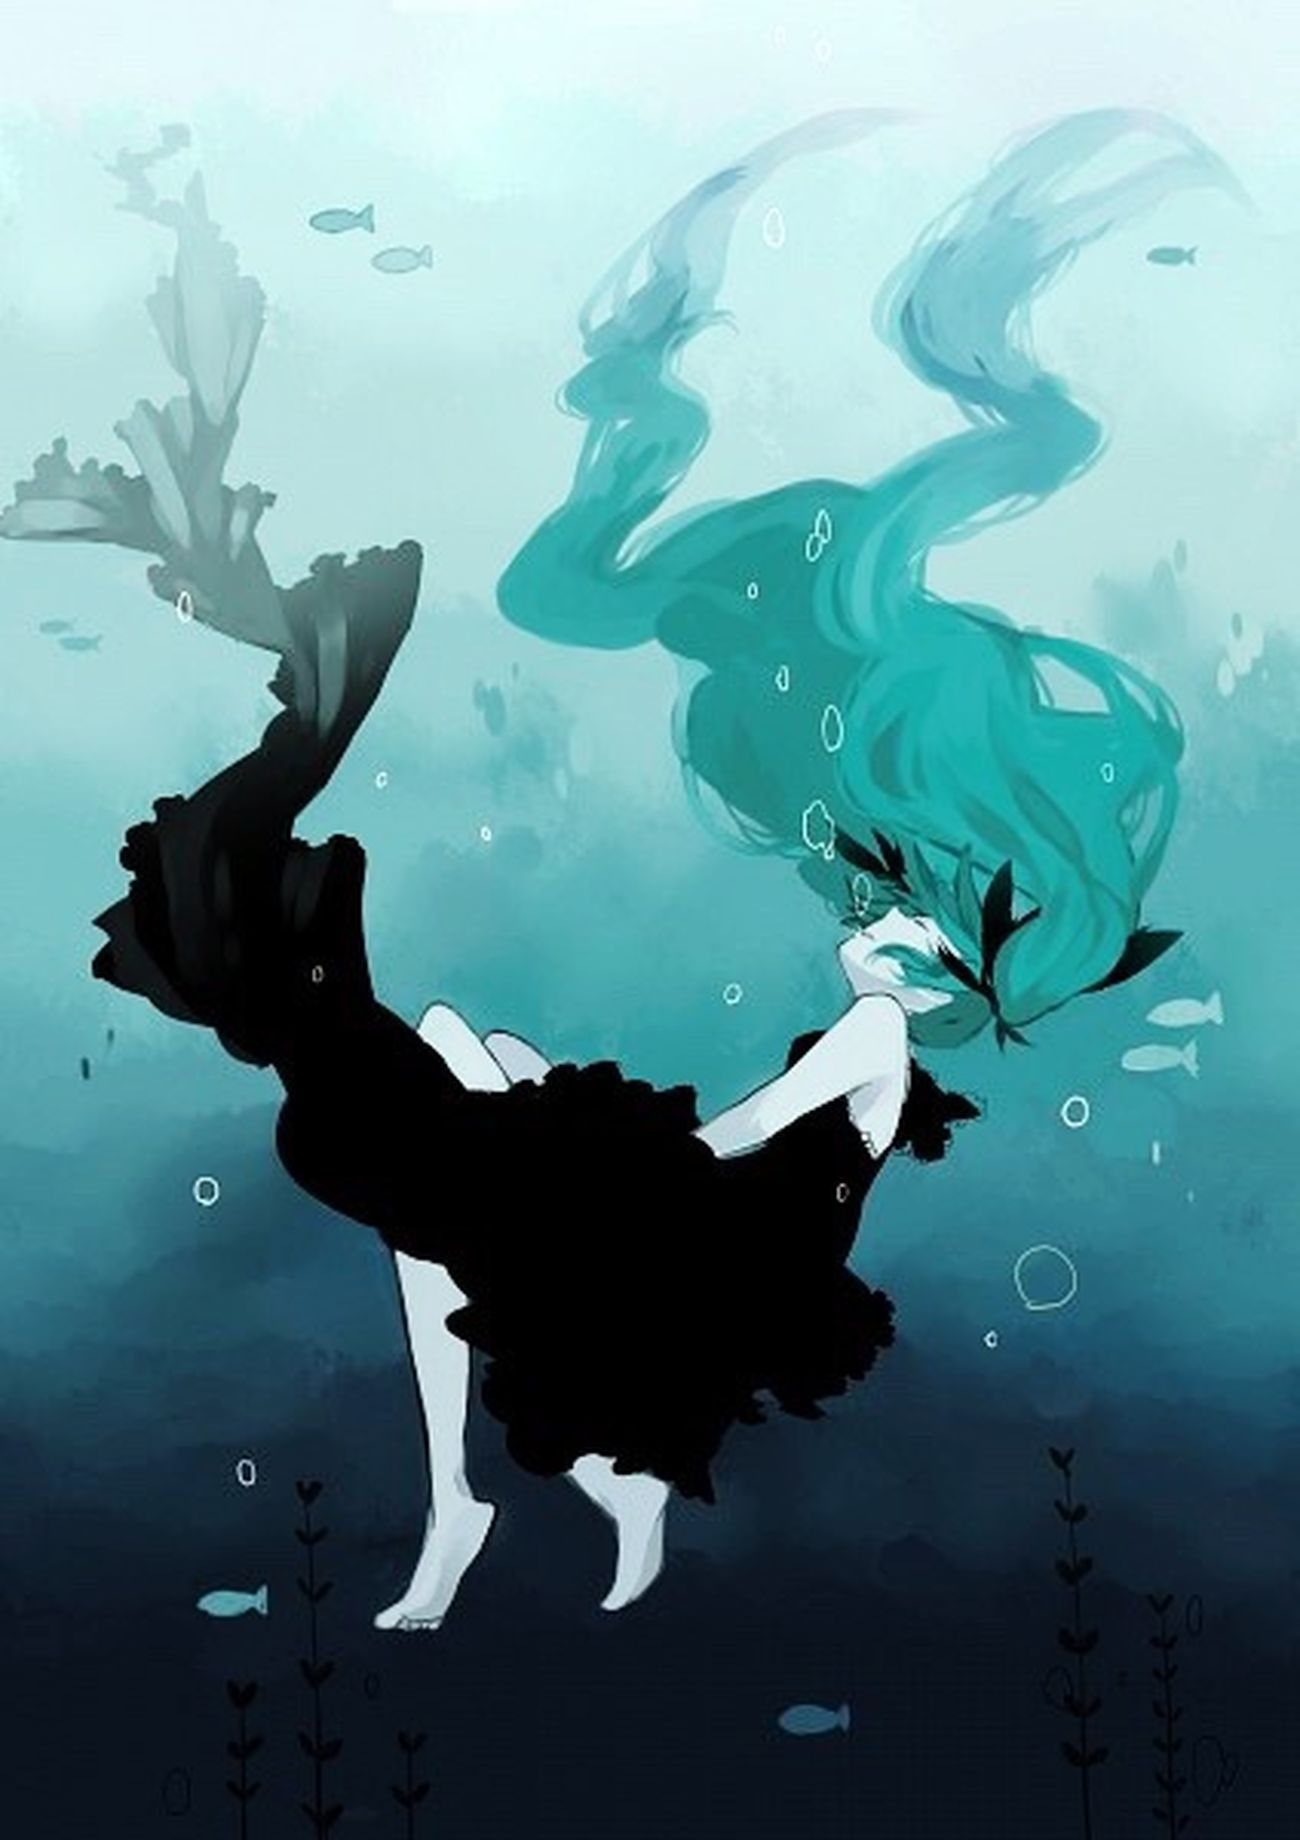 Deep sea girl Deep Sea Girl Anime Art аниме Море Meer Sea Ocian Vocaloid